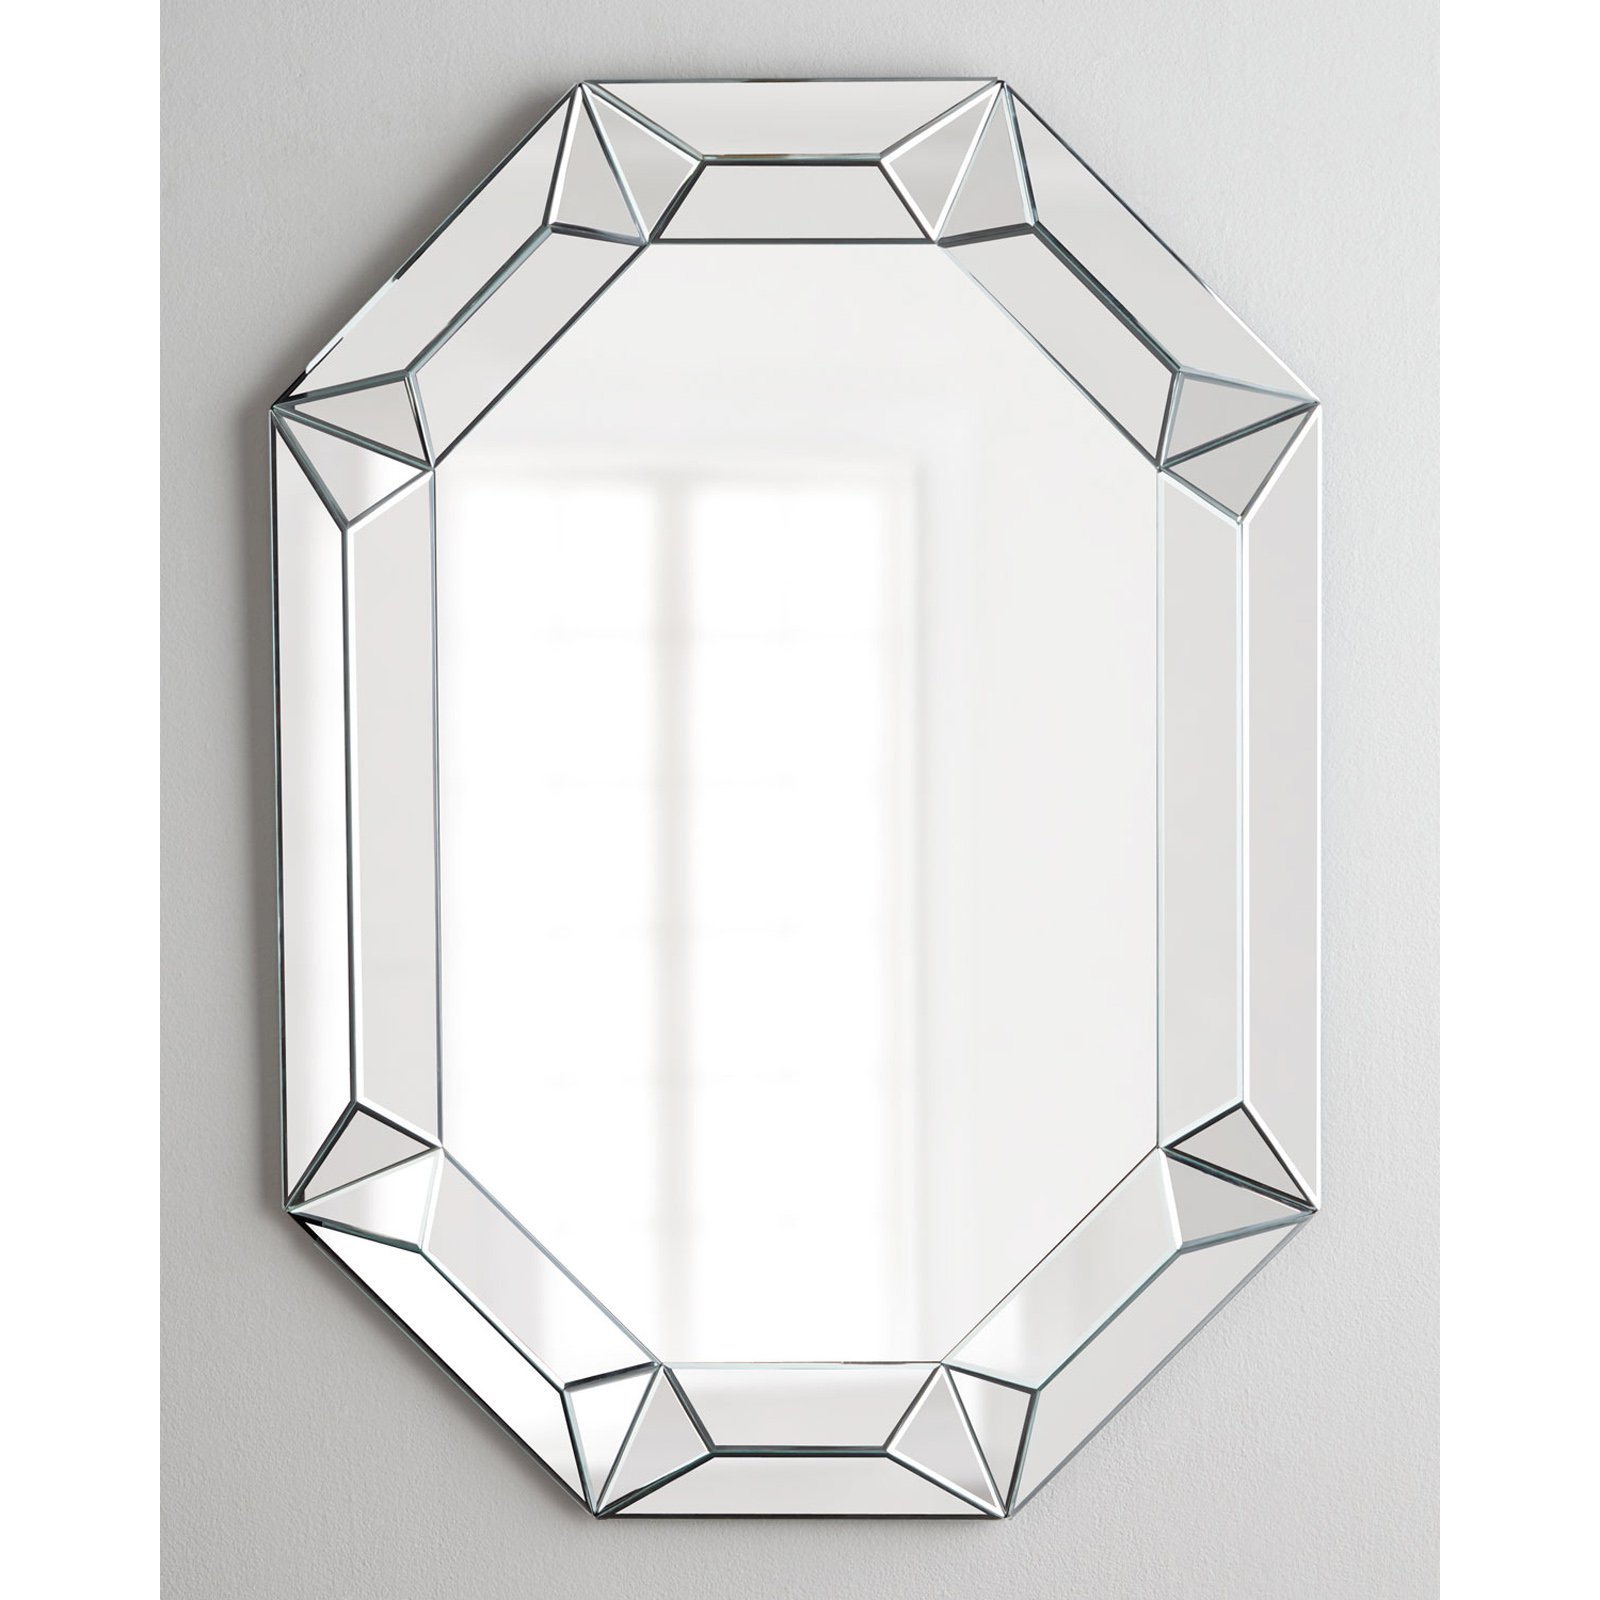 Image of Afina Modern Luxe Octagon Wall Mirror - 28W x 42H in.